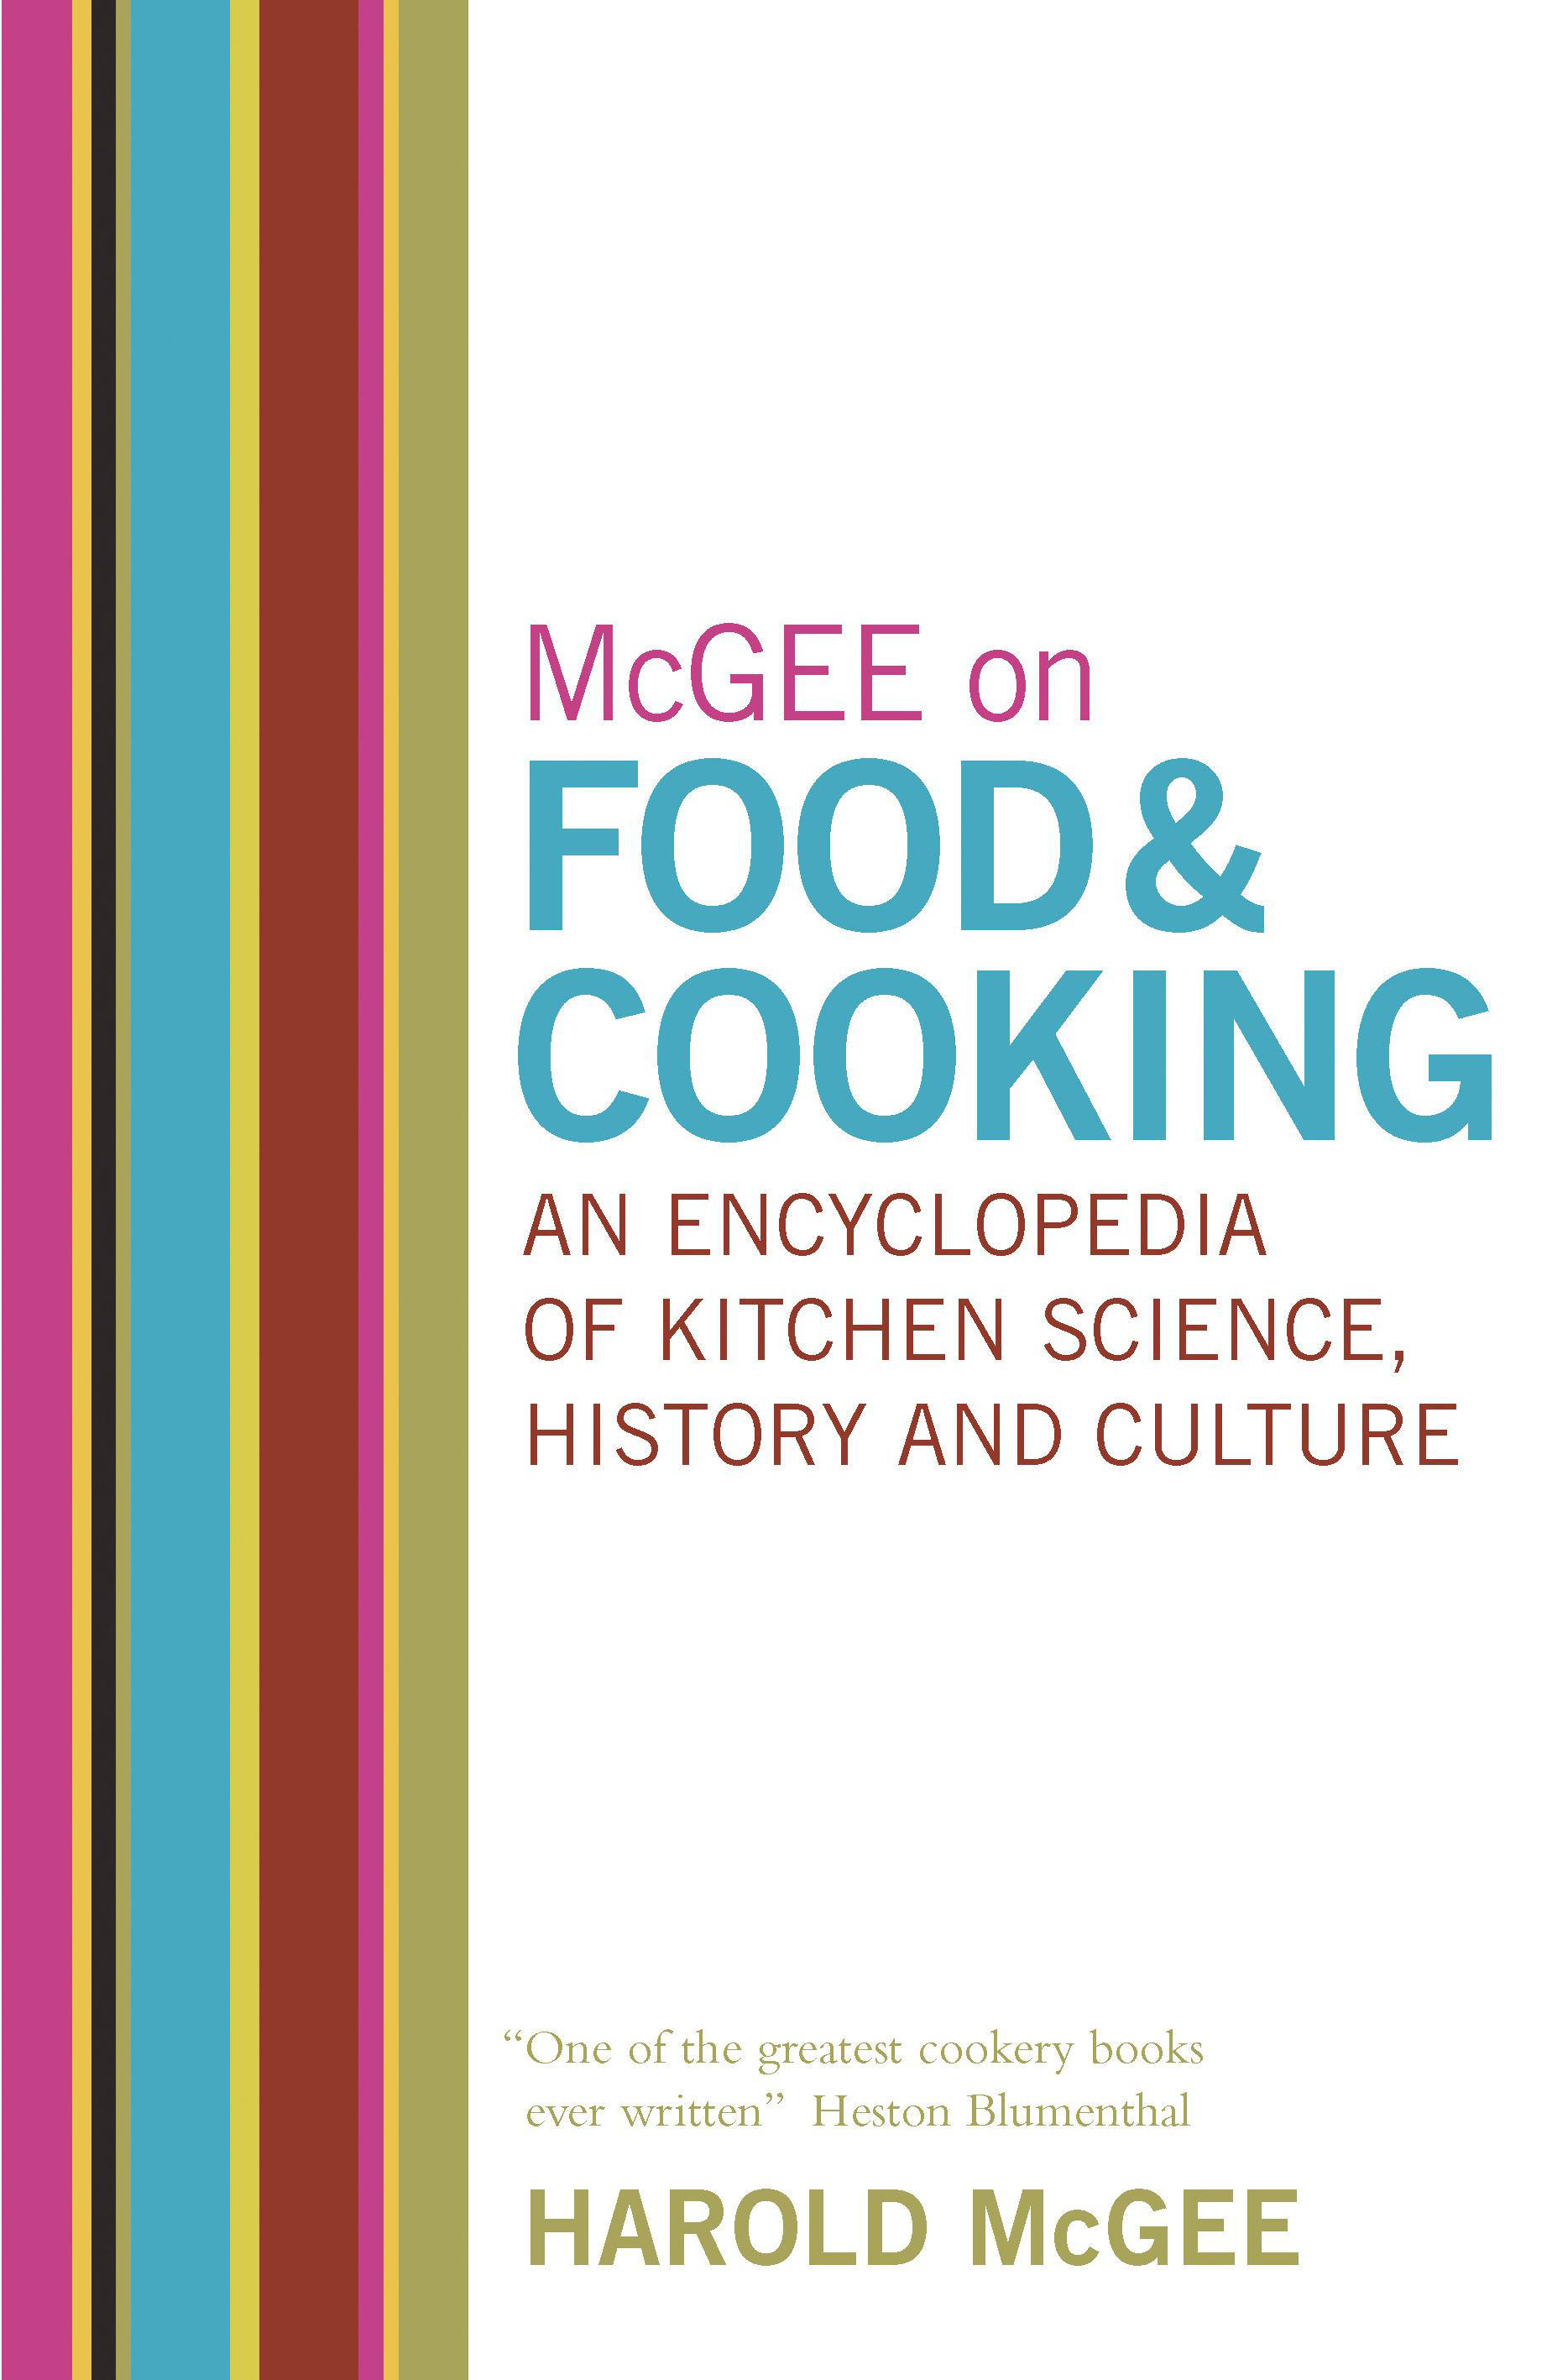 McGee on Food and Cooking by Harold McGee, ISBN: 9780340831496